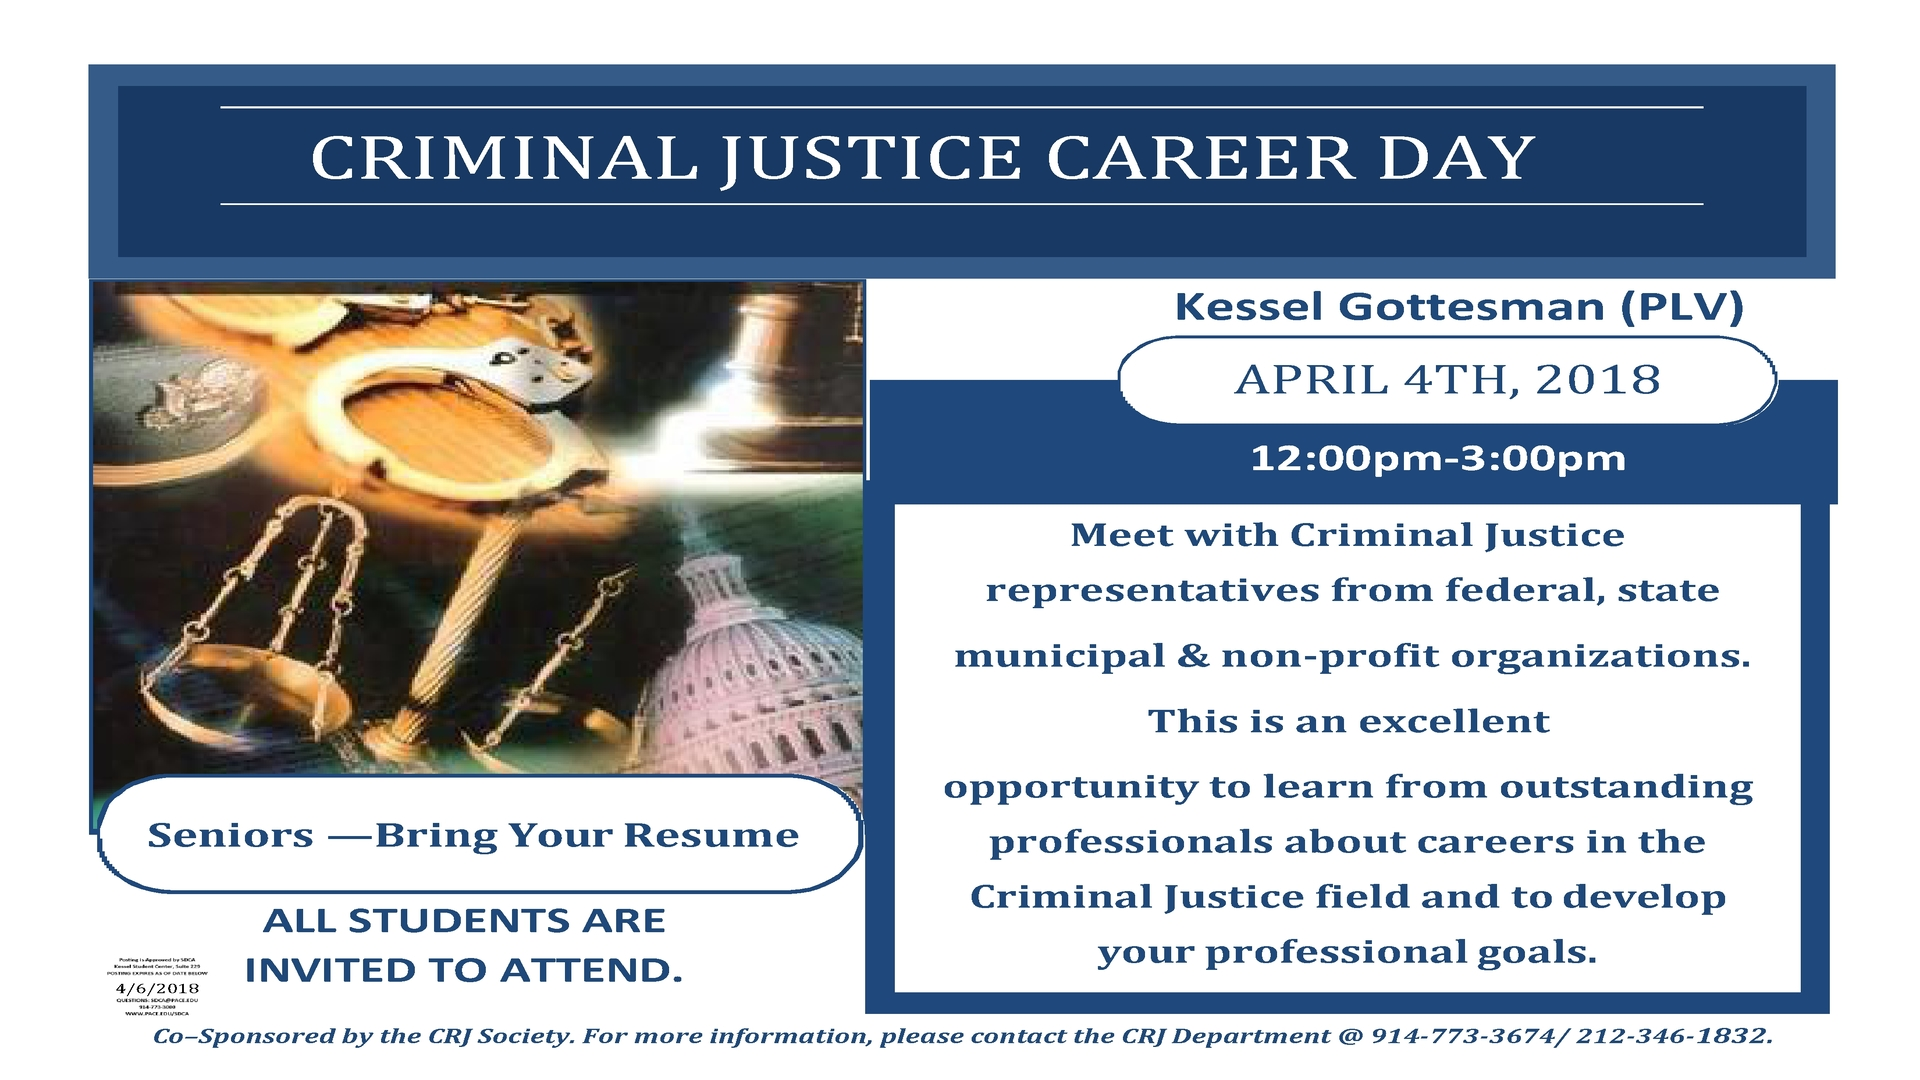 Information regarding CRJ Career Day is as follows Create Your Own Tags: is #crj #careerday #career #job #CRJSOCIETY #STUDENTS and Start date is December 06 2017 and End Date is April 04 2018 and File is Browse and Group Name is Criminal Justice Society and Name of Ad/Event is CRJ Career Day and Affiliation is Department and File Name is CRJ-CAREER-DAY-2018-stamped_comp.jpg and Panel is Main and Name is Melissa Schilio and Email is mschilio@pace.edu and